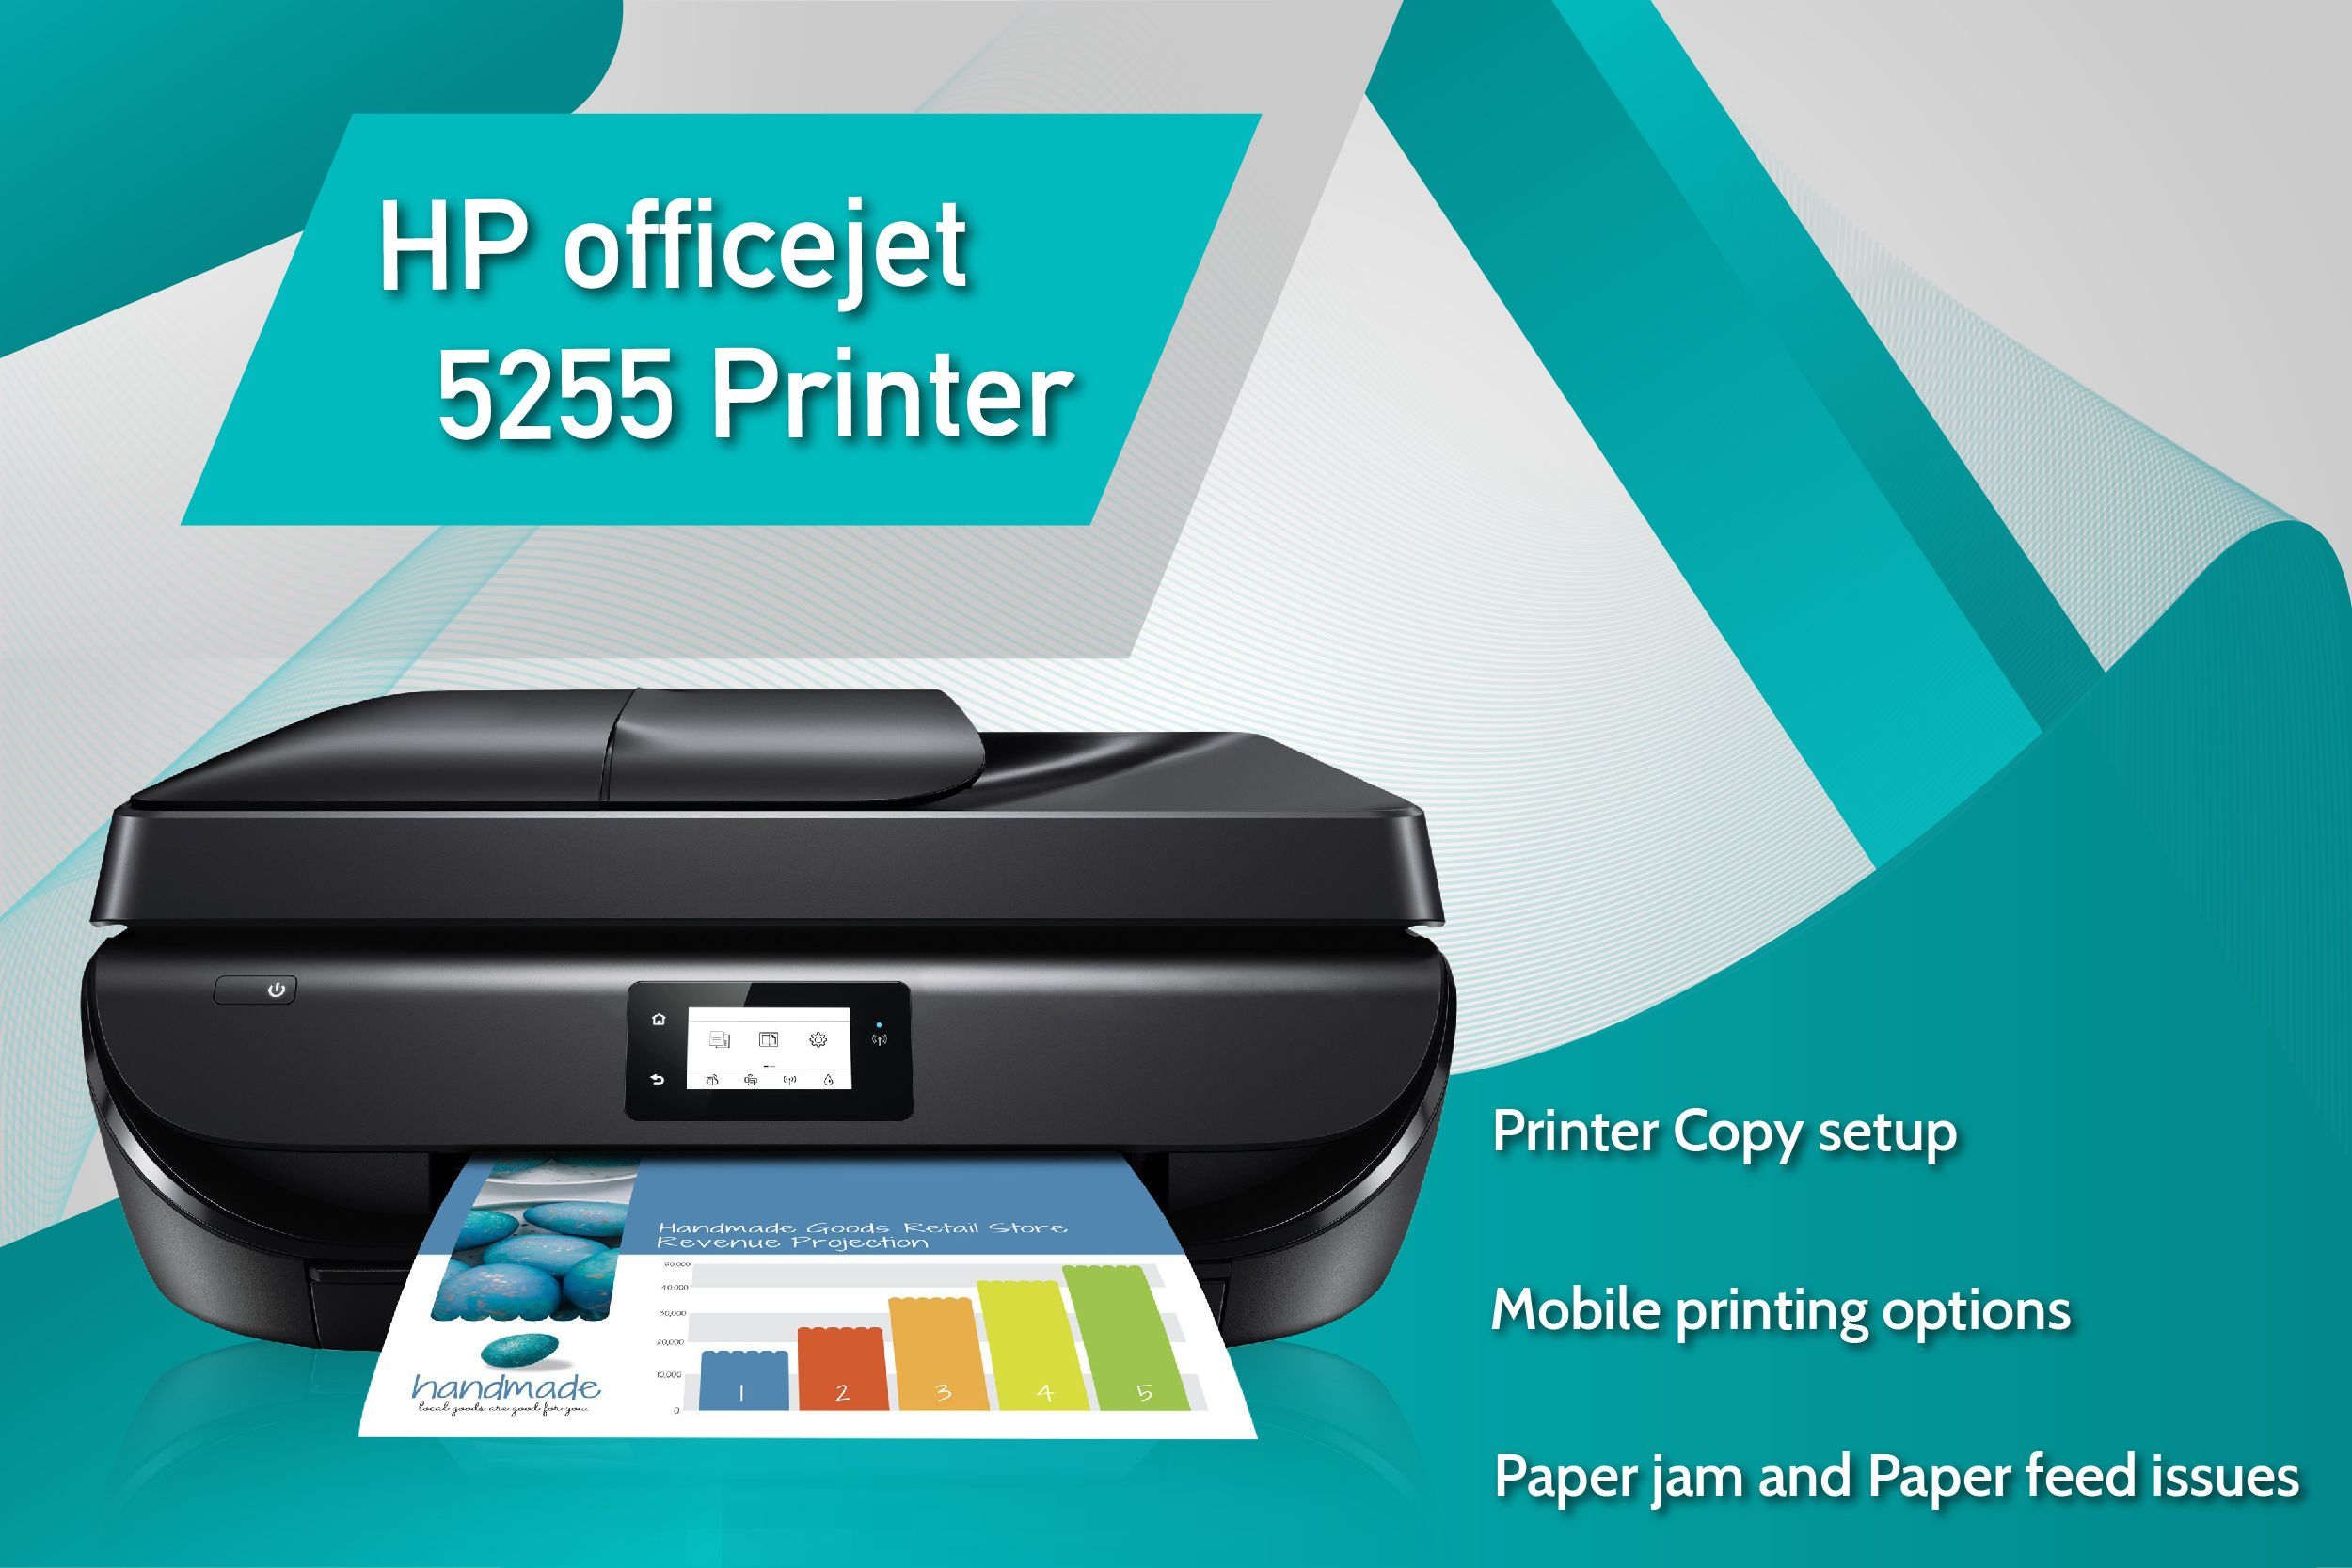 It is the latest trendy printer with the function of print